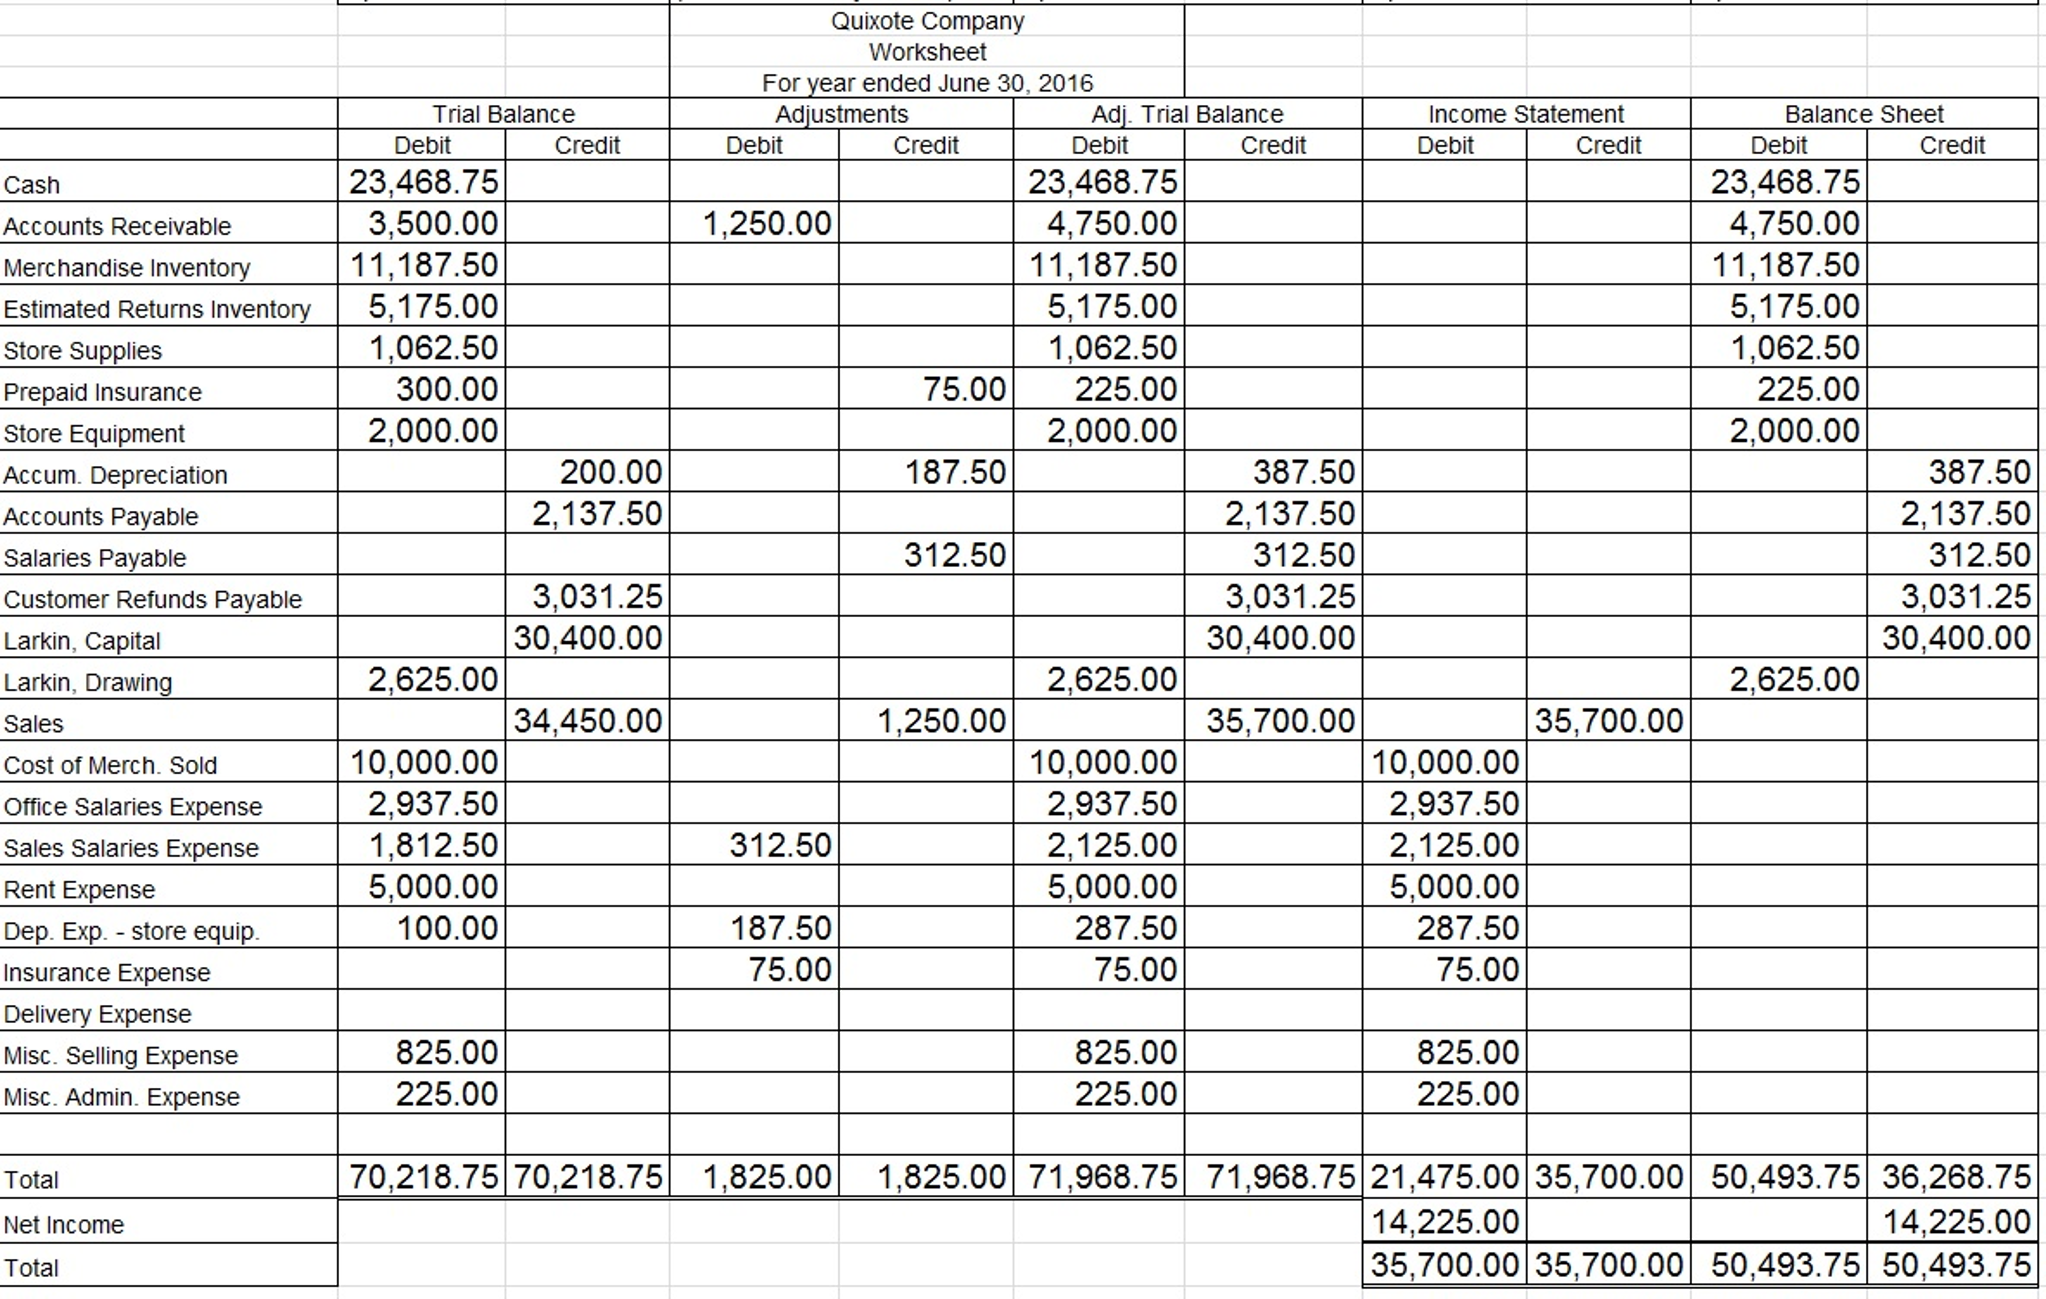 Solved: Quixote Company Worksheet For Year Ended June 30 ...